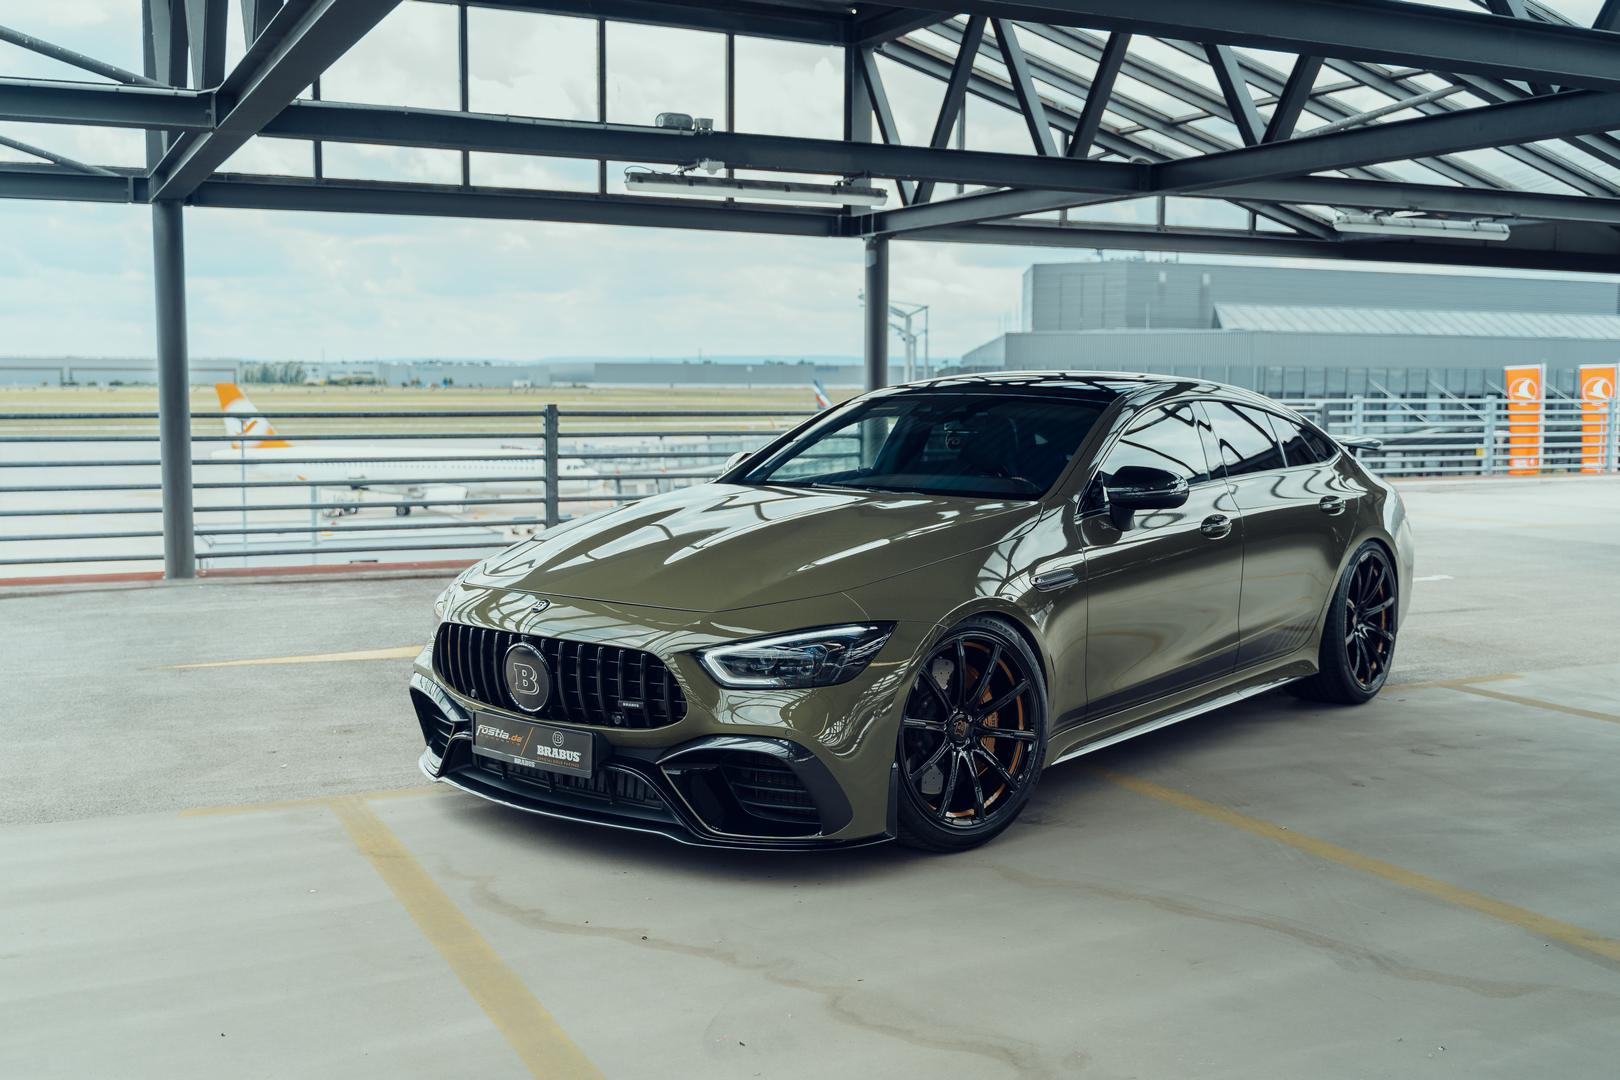 Badlands Green AMG GT 63 Gets the Brabus GT800 Treatment